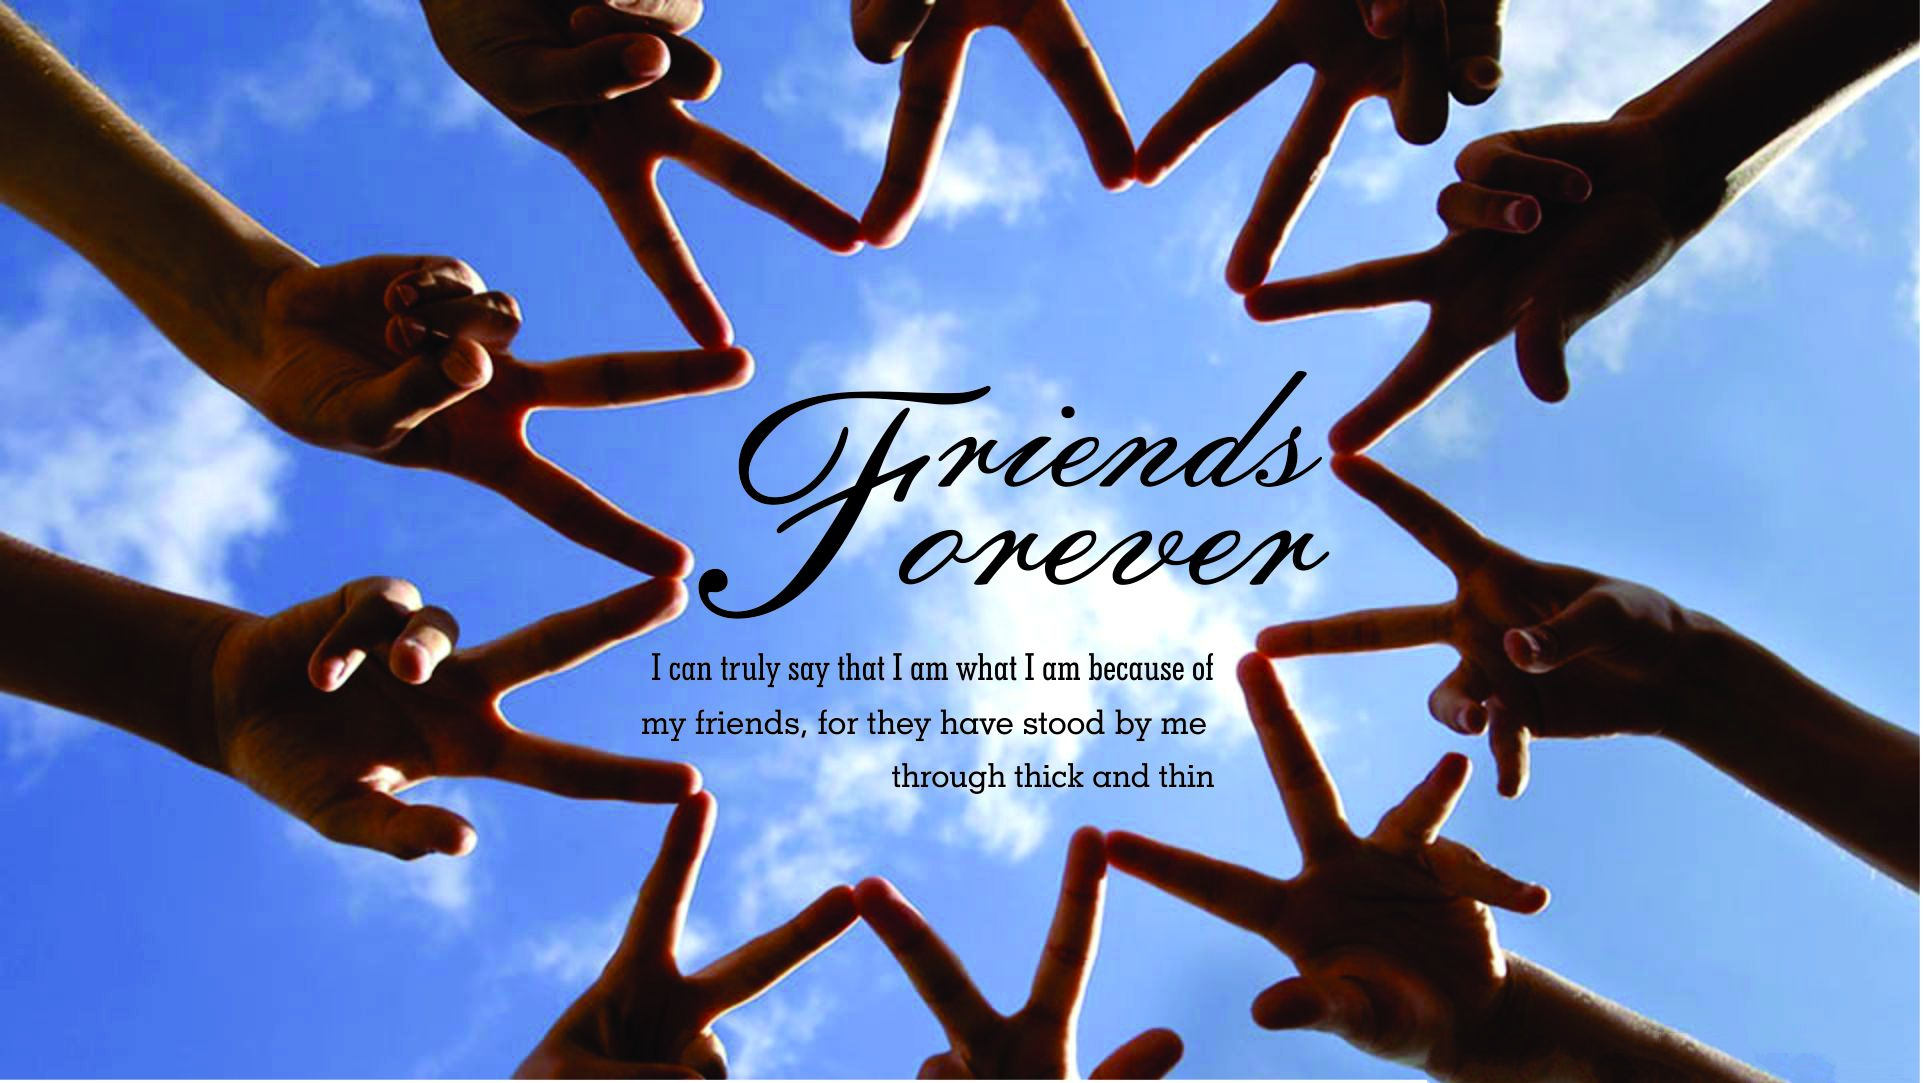 Best Friends Forever Backgrounds Hd   Friends Forever Hd Images 1924x1083